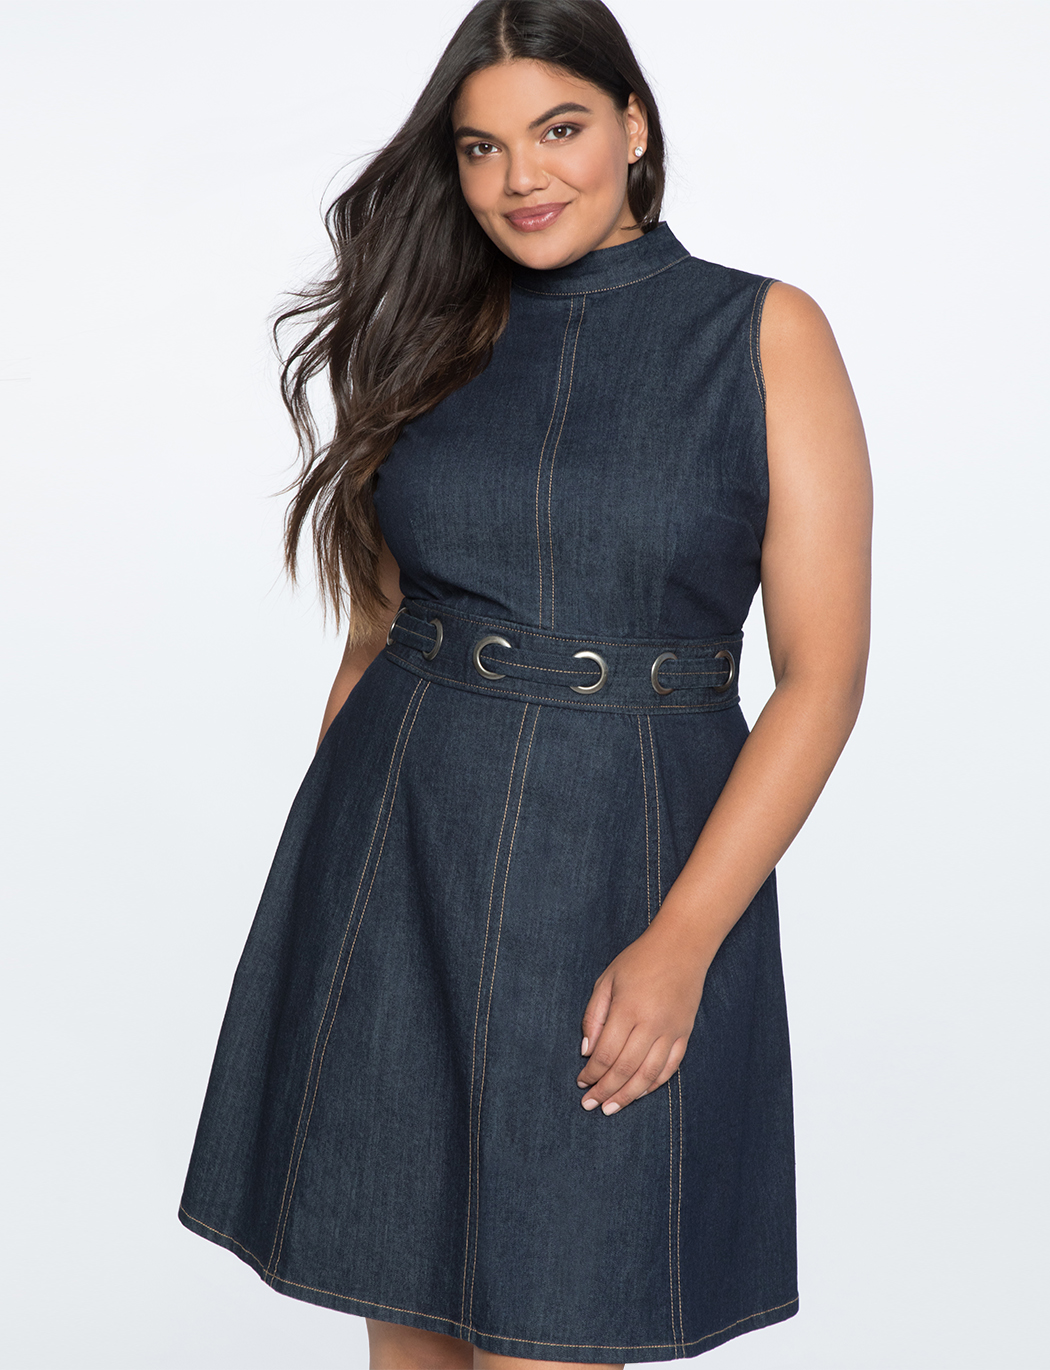 A-Line Denim Dress with Grommet Detail | Women\'s Plus Size Dresses | ELOQUII